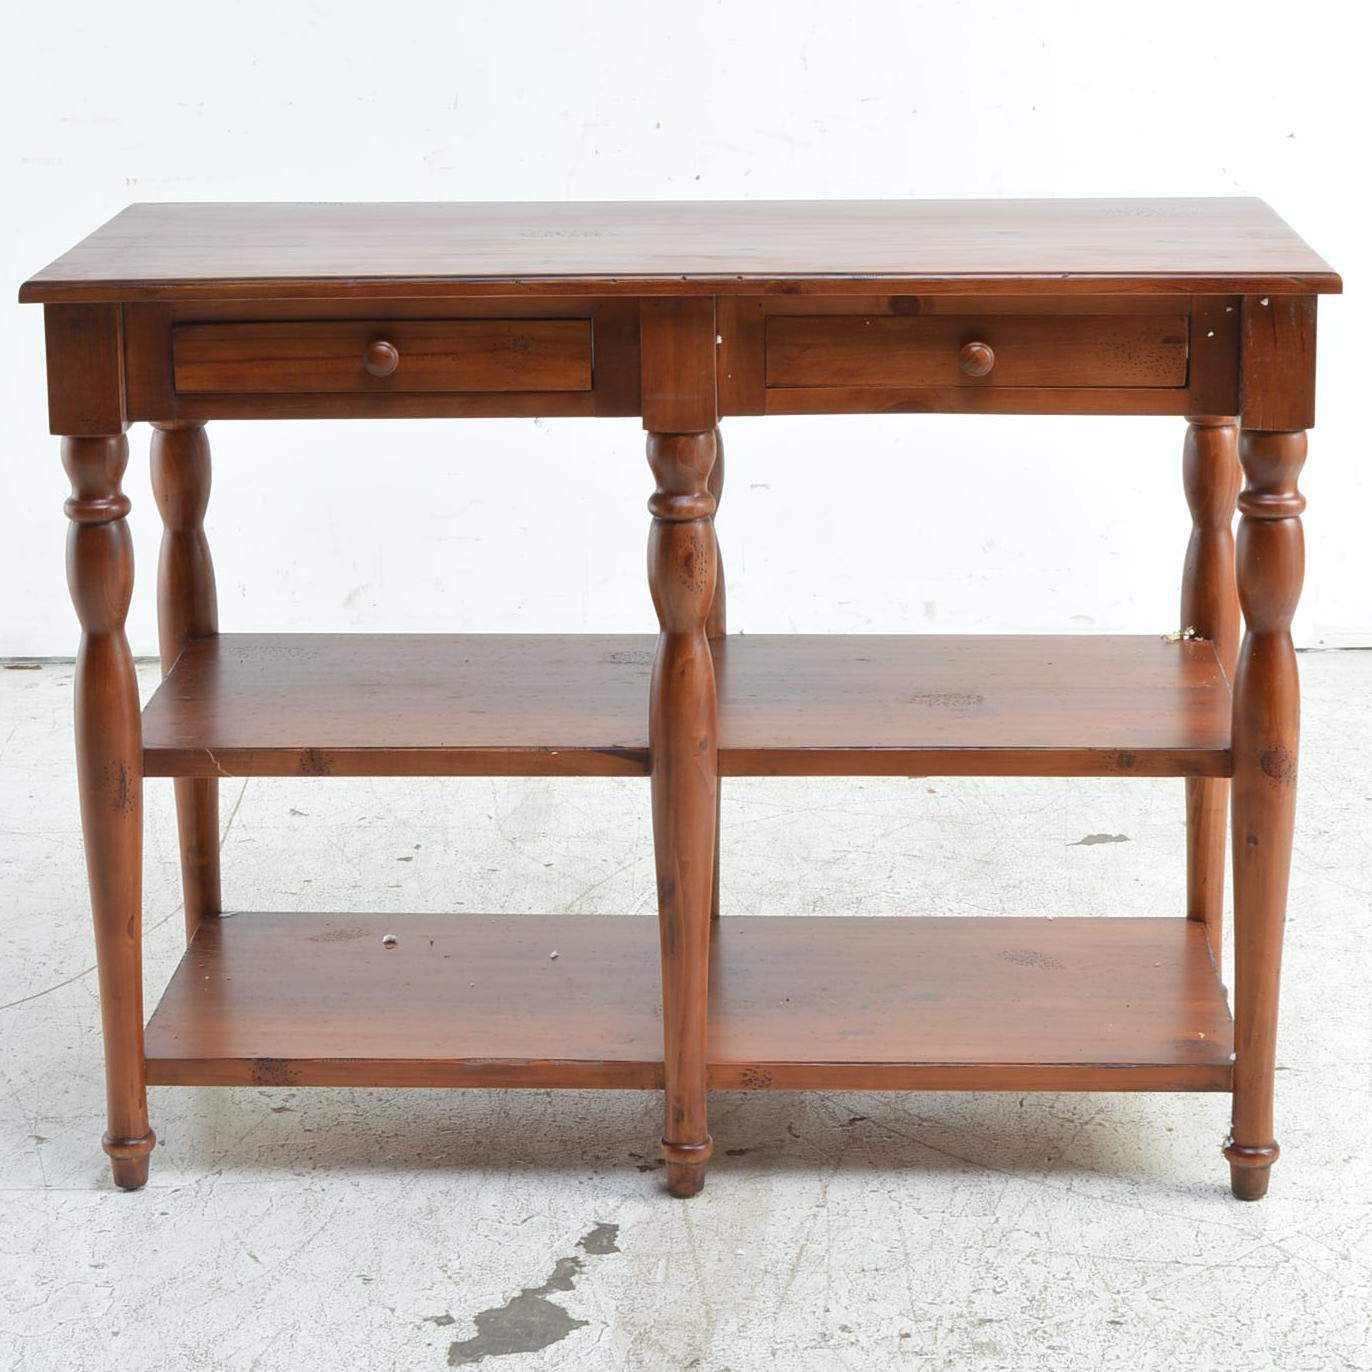 Stained Pine Tiered Console Table